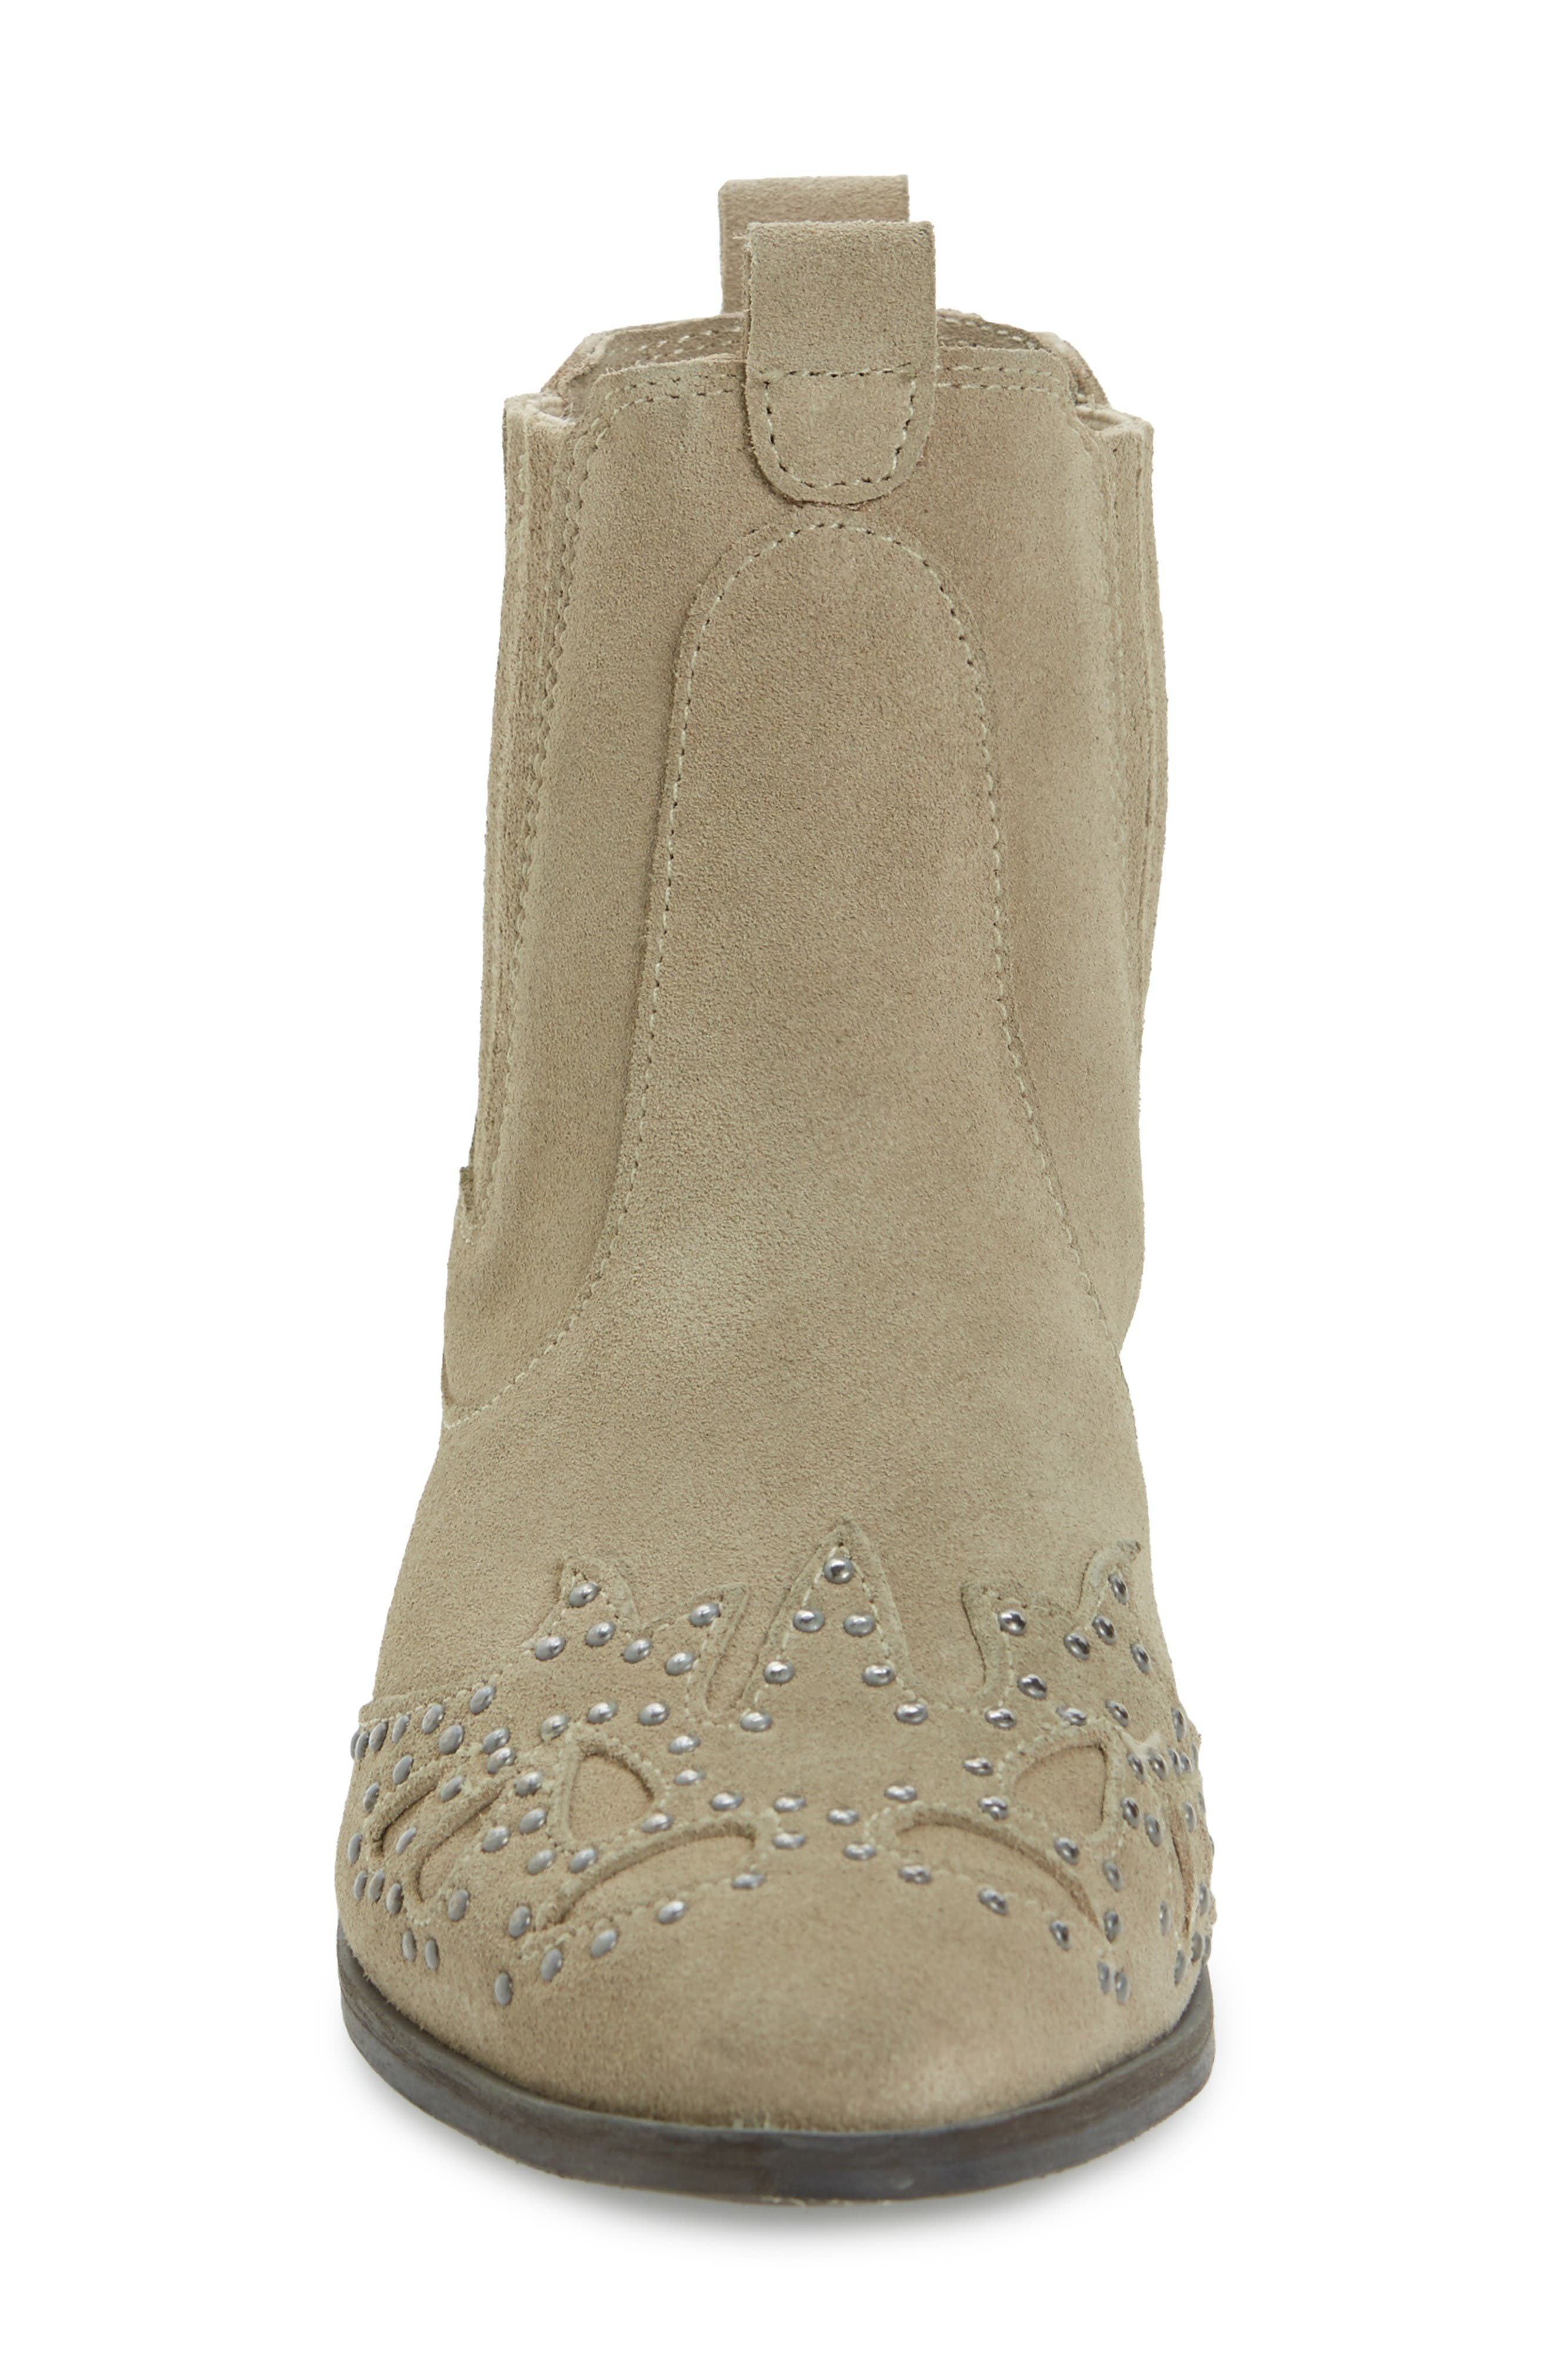 Backstage Bootie,                             Alternate thumbnail 3, color,                             Taupe Leather